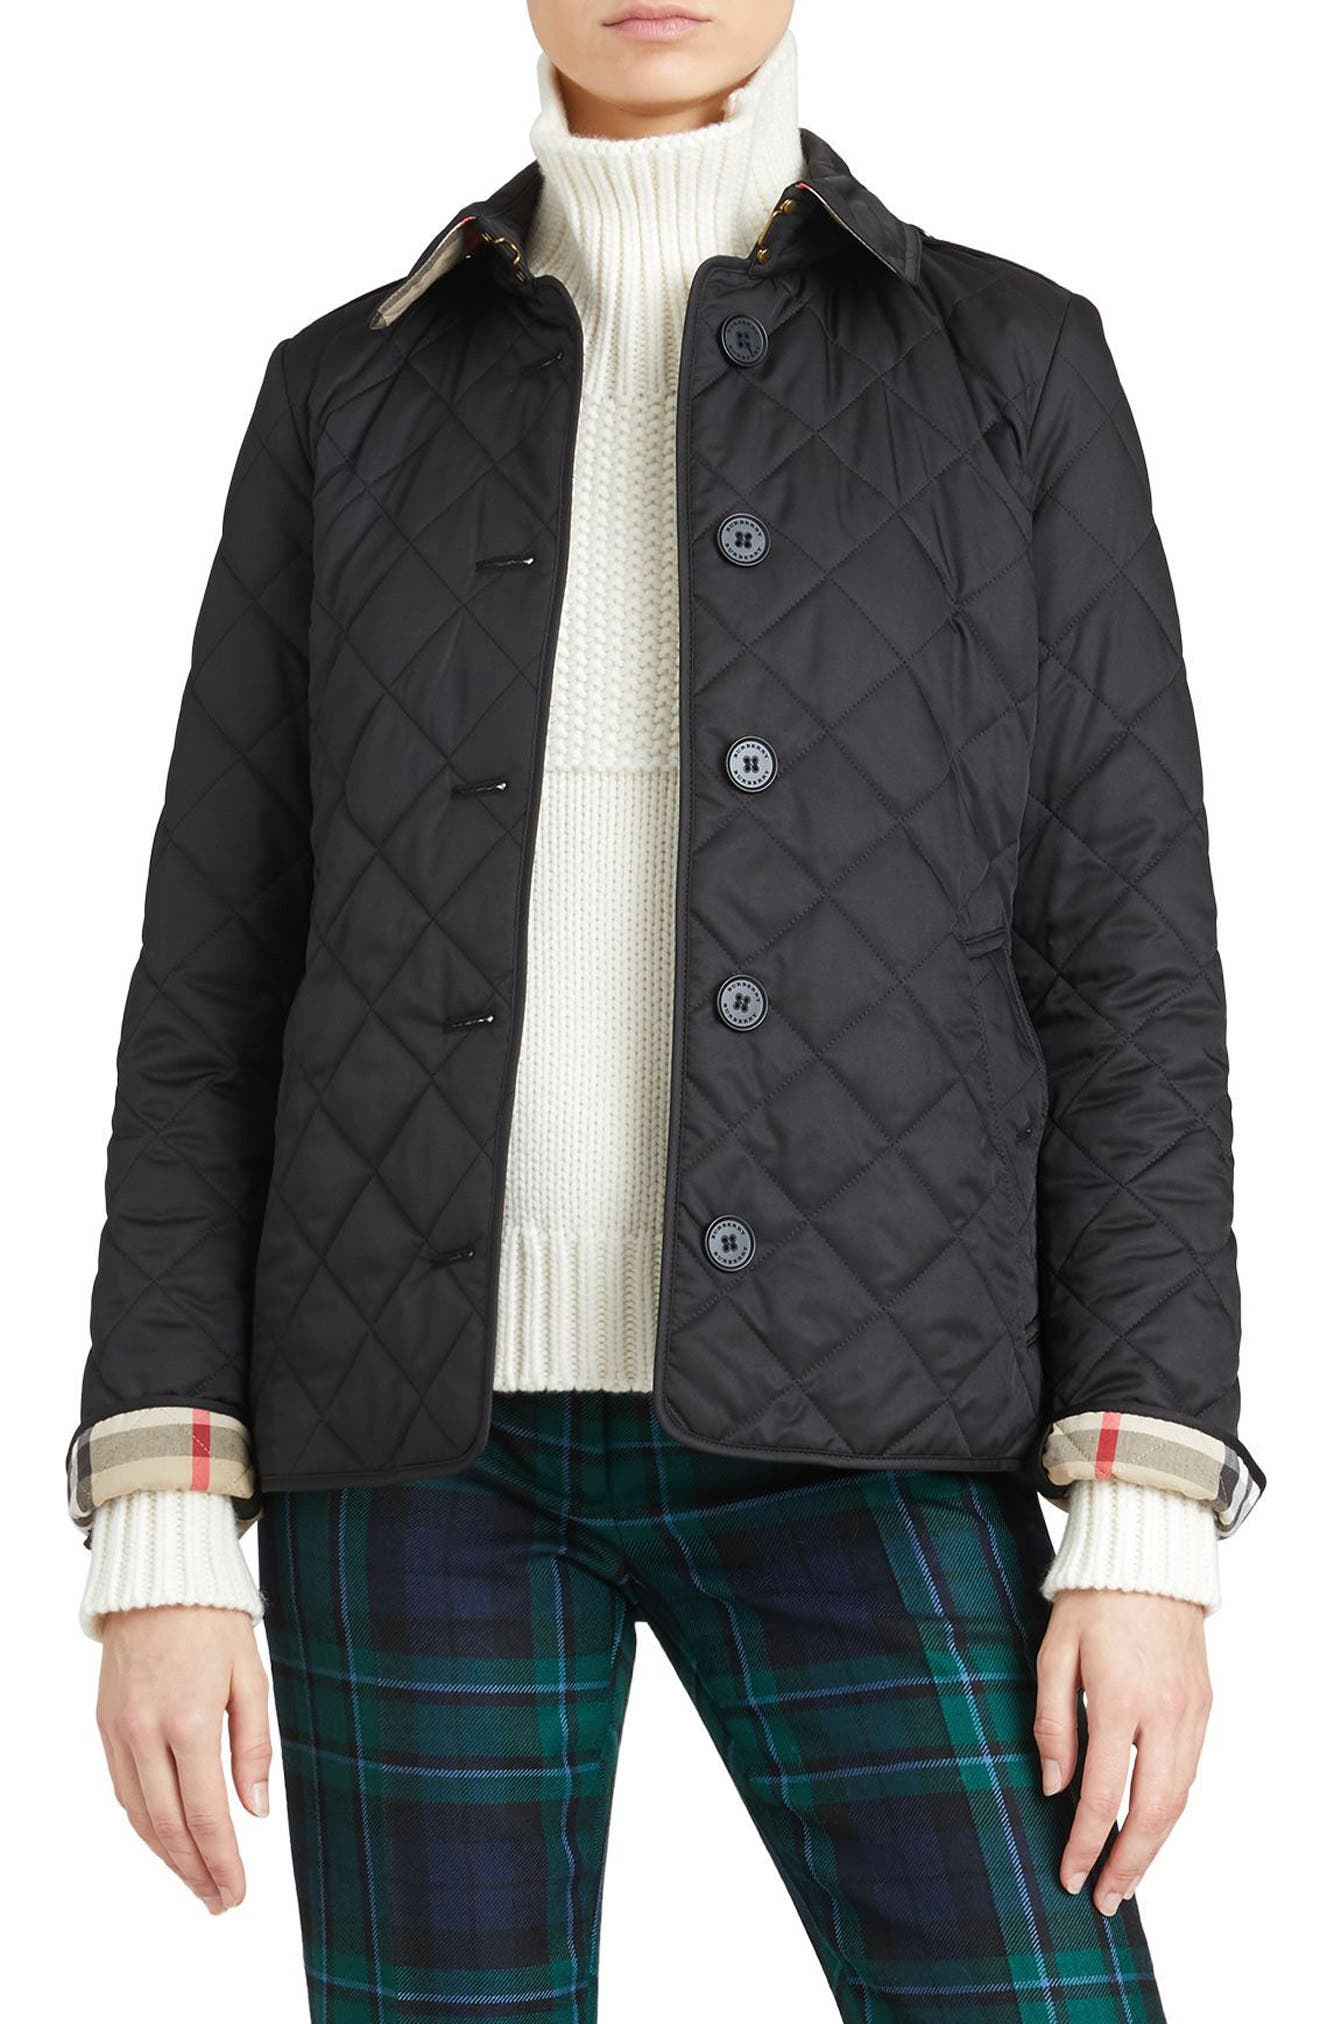 Frankby Quilted Jacket,                             Main thumbnail 1, color,                             001